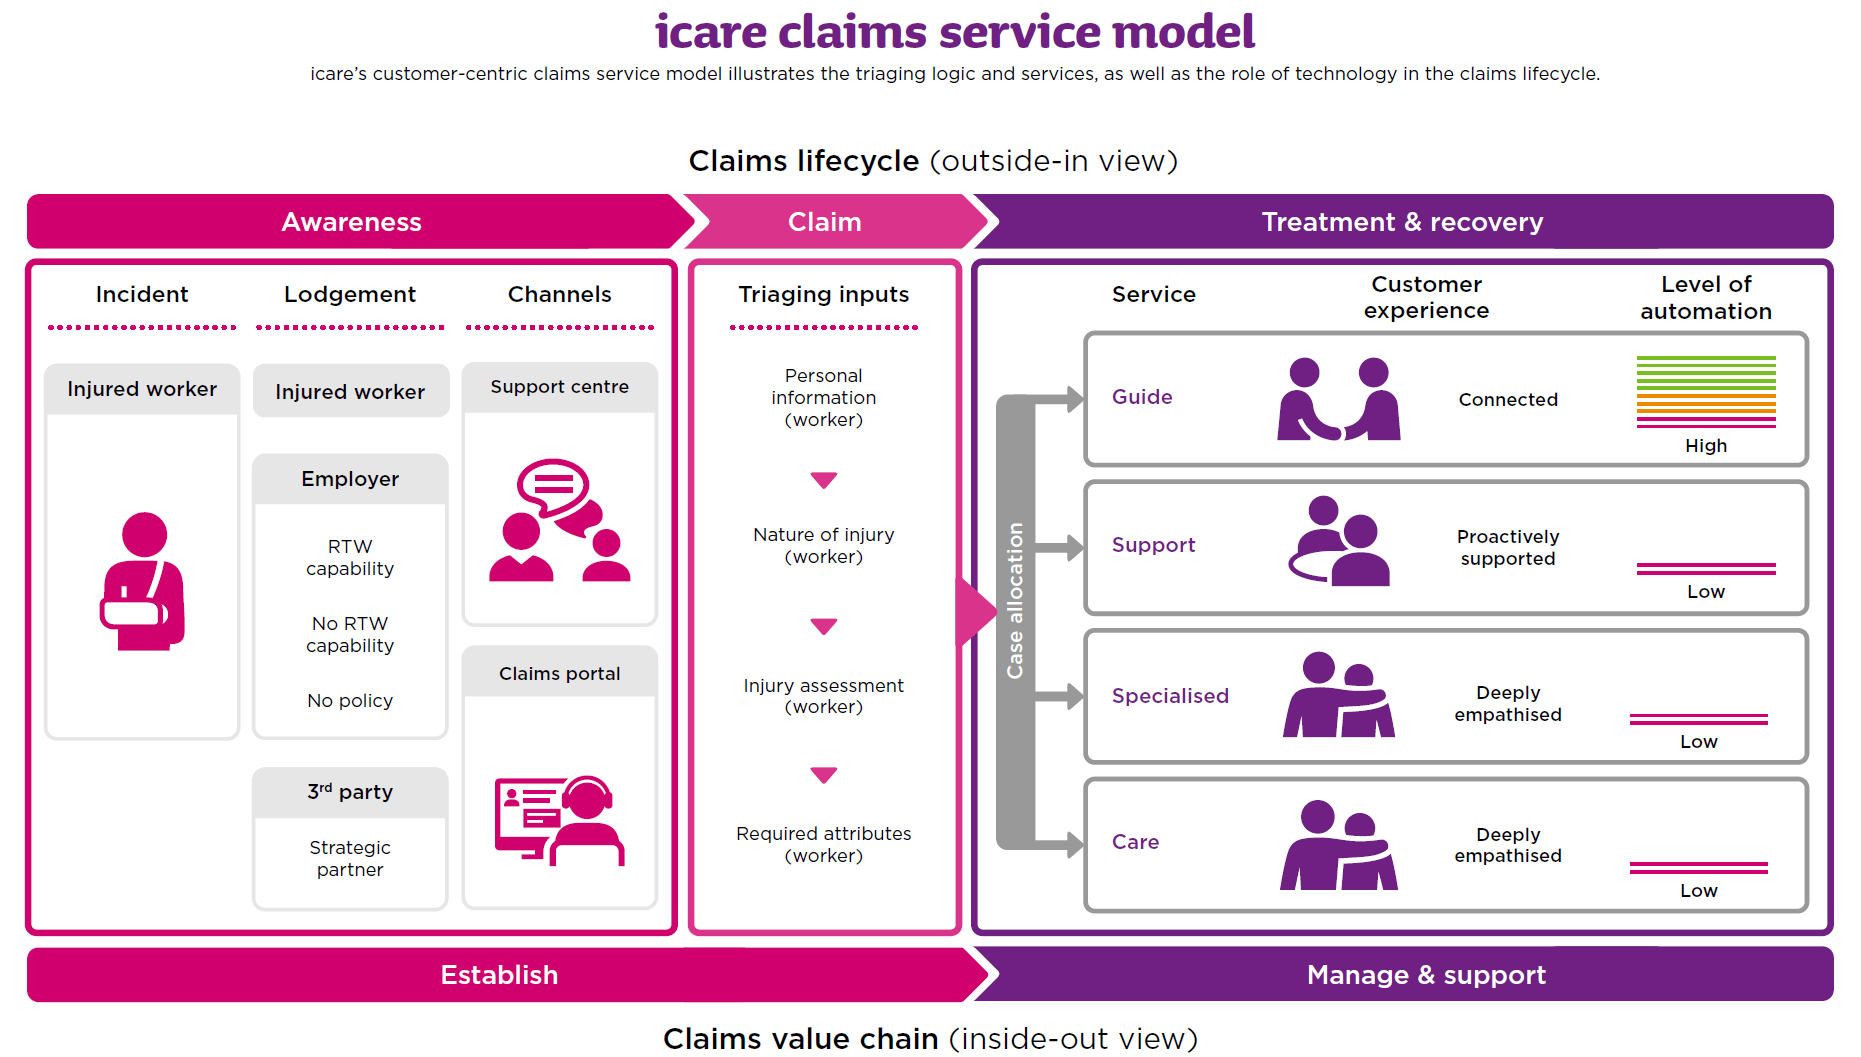 icare's customer-centric claims service model illustrates the triaging logic and services, as we as the role of technology in the claims lifecycle. Download the PDF for full details.